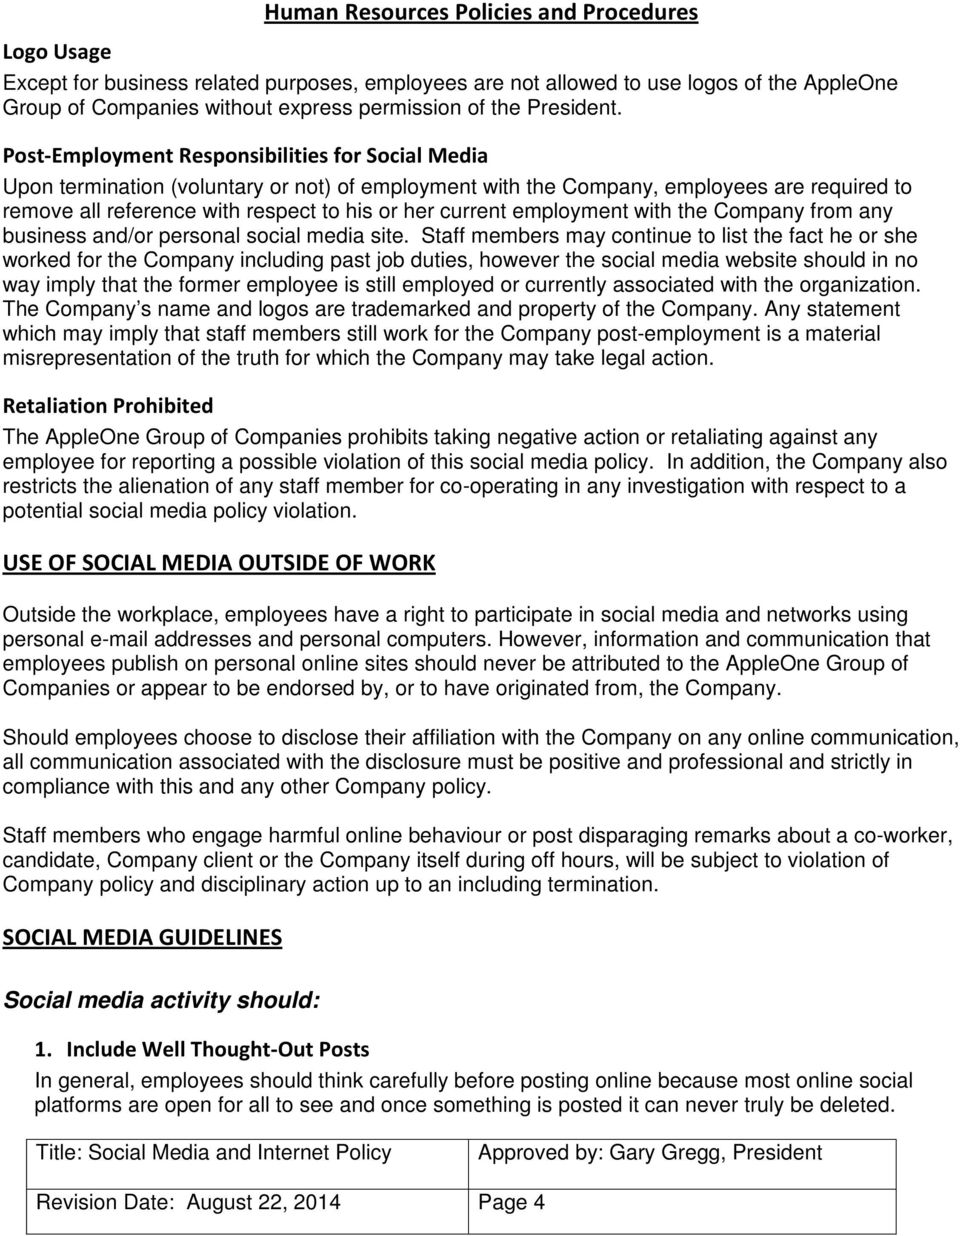 Post-Employment Responsibilities for Social Media Upon termination (voluntary or not) of employment with the Company, employees are required to remove all reference with respect to his or her current